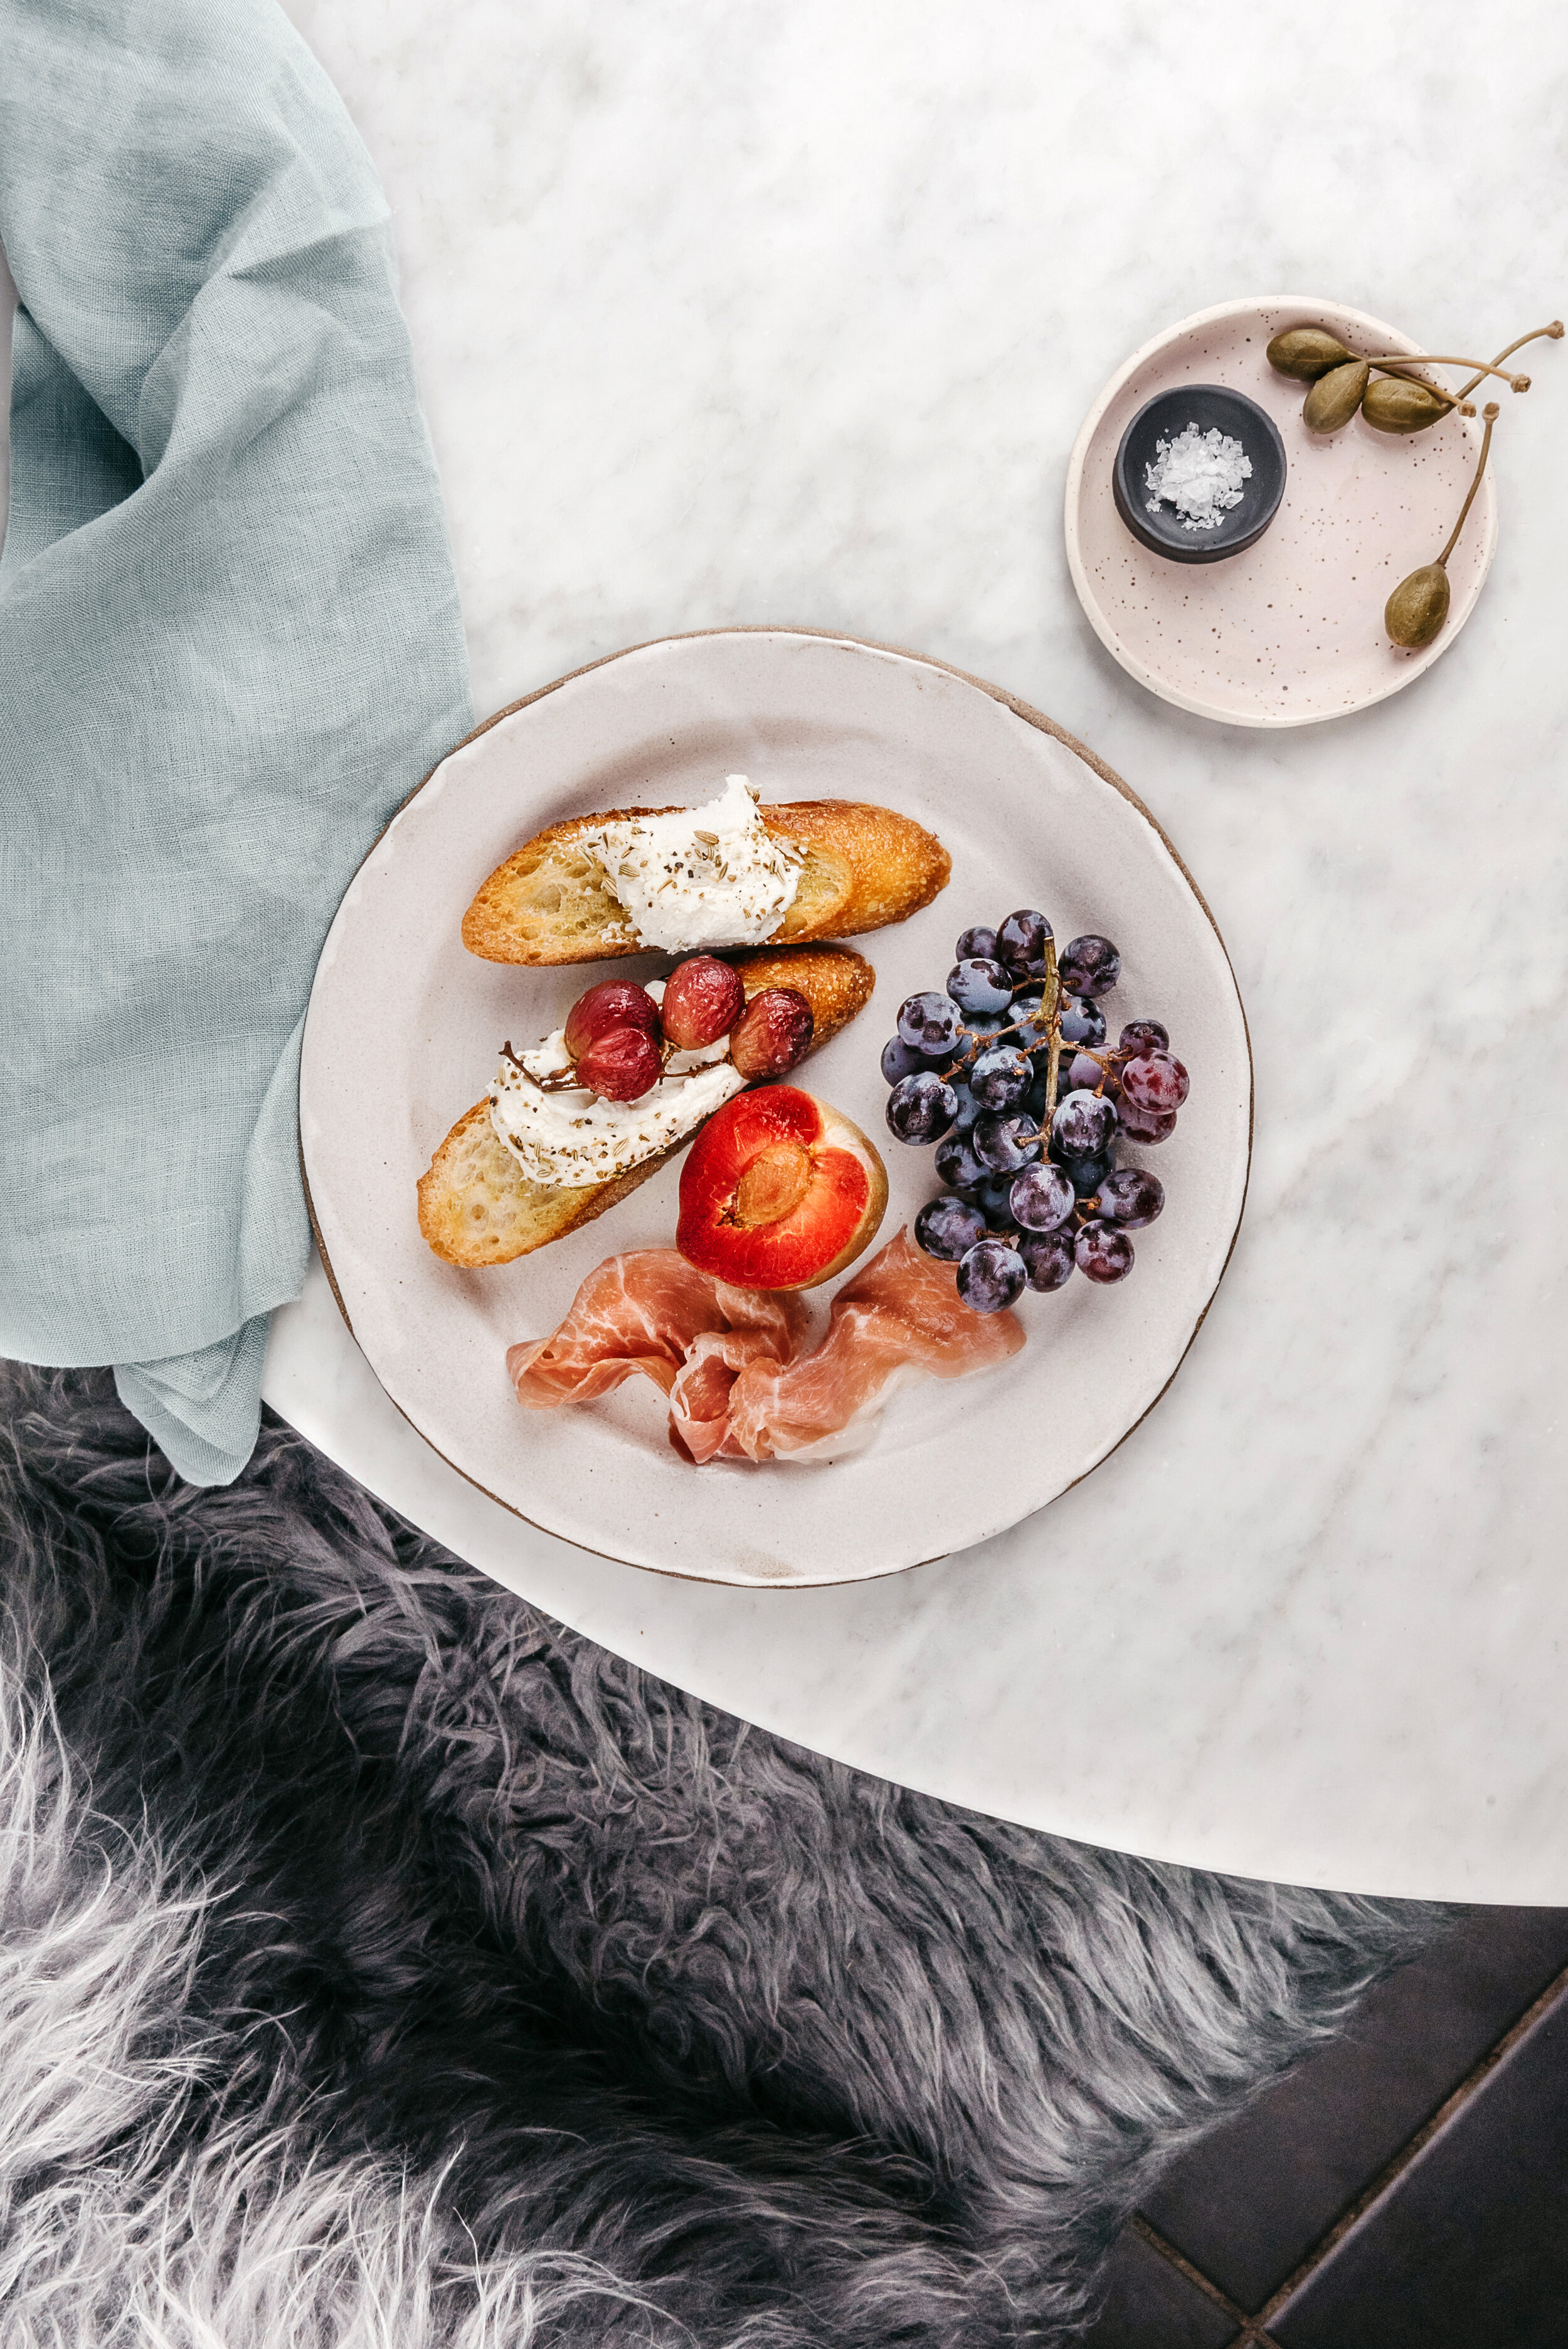 HONEY AND FENNEL GOAT CHEESE TOAST WITH ROASTED GRAPES  #roth #sarahcopeland #goatcheese #chevre